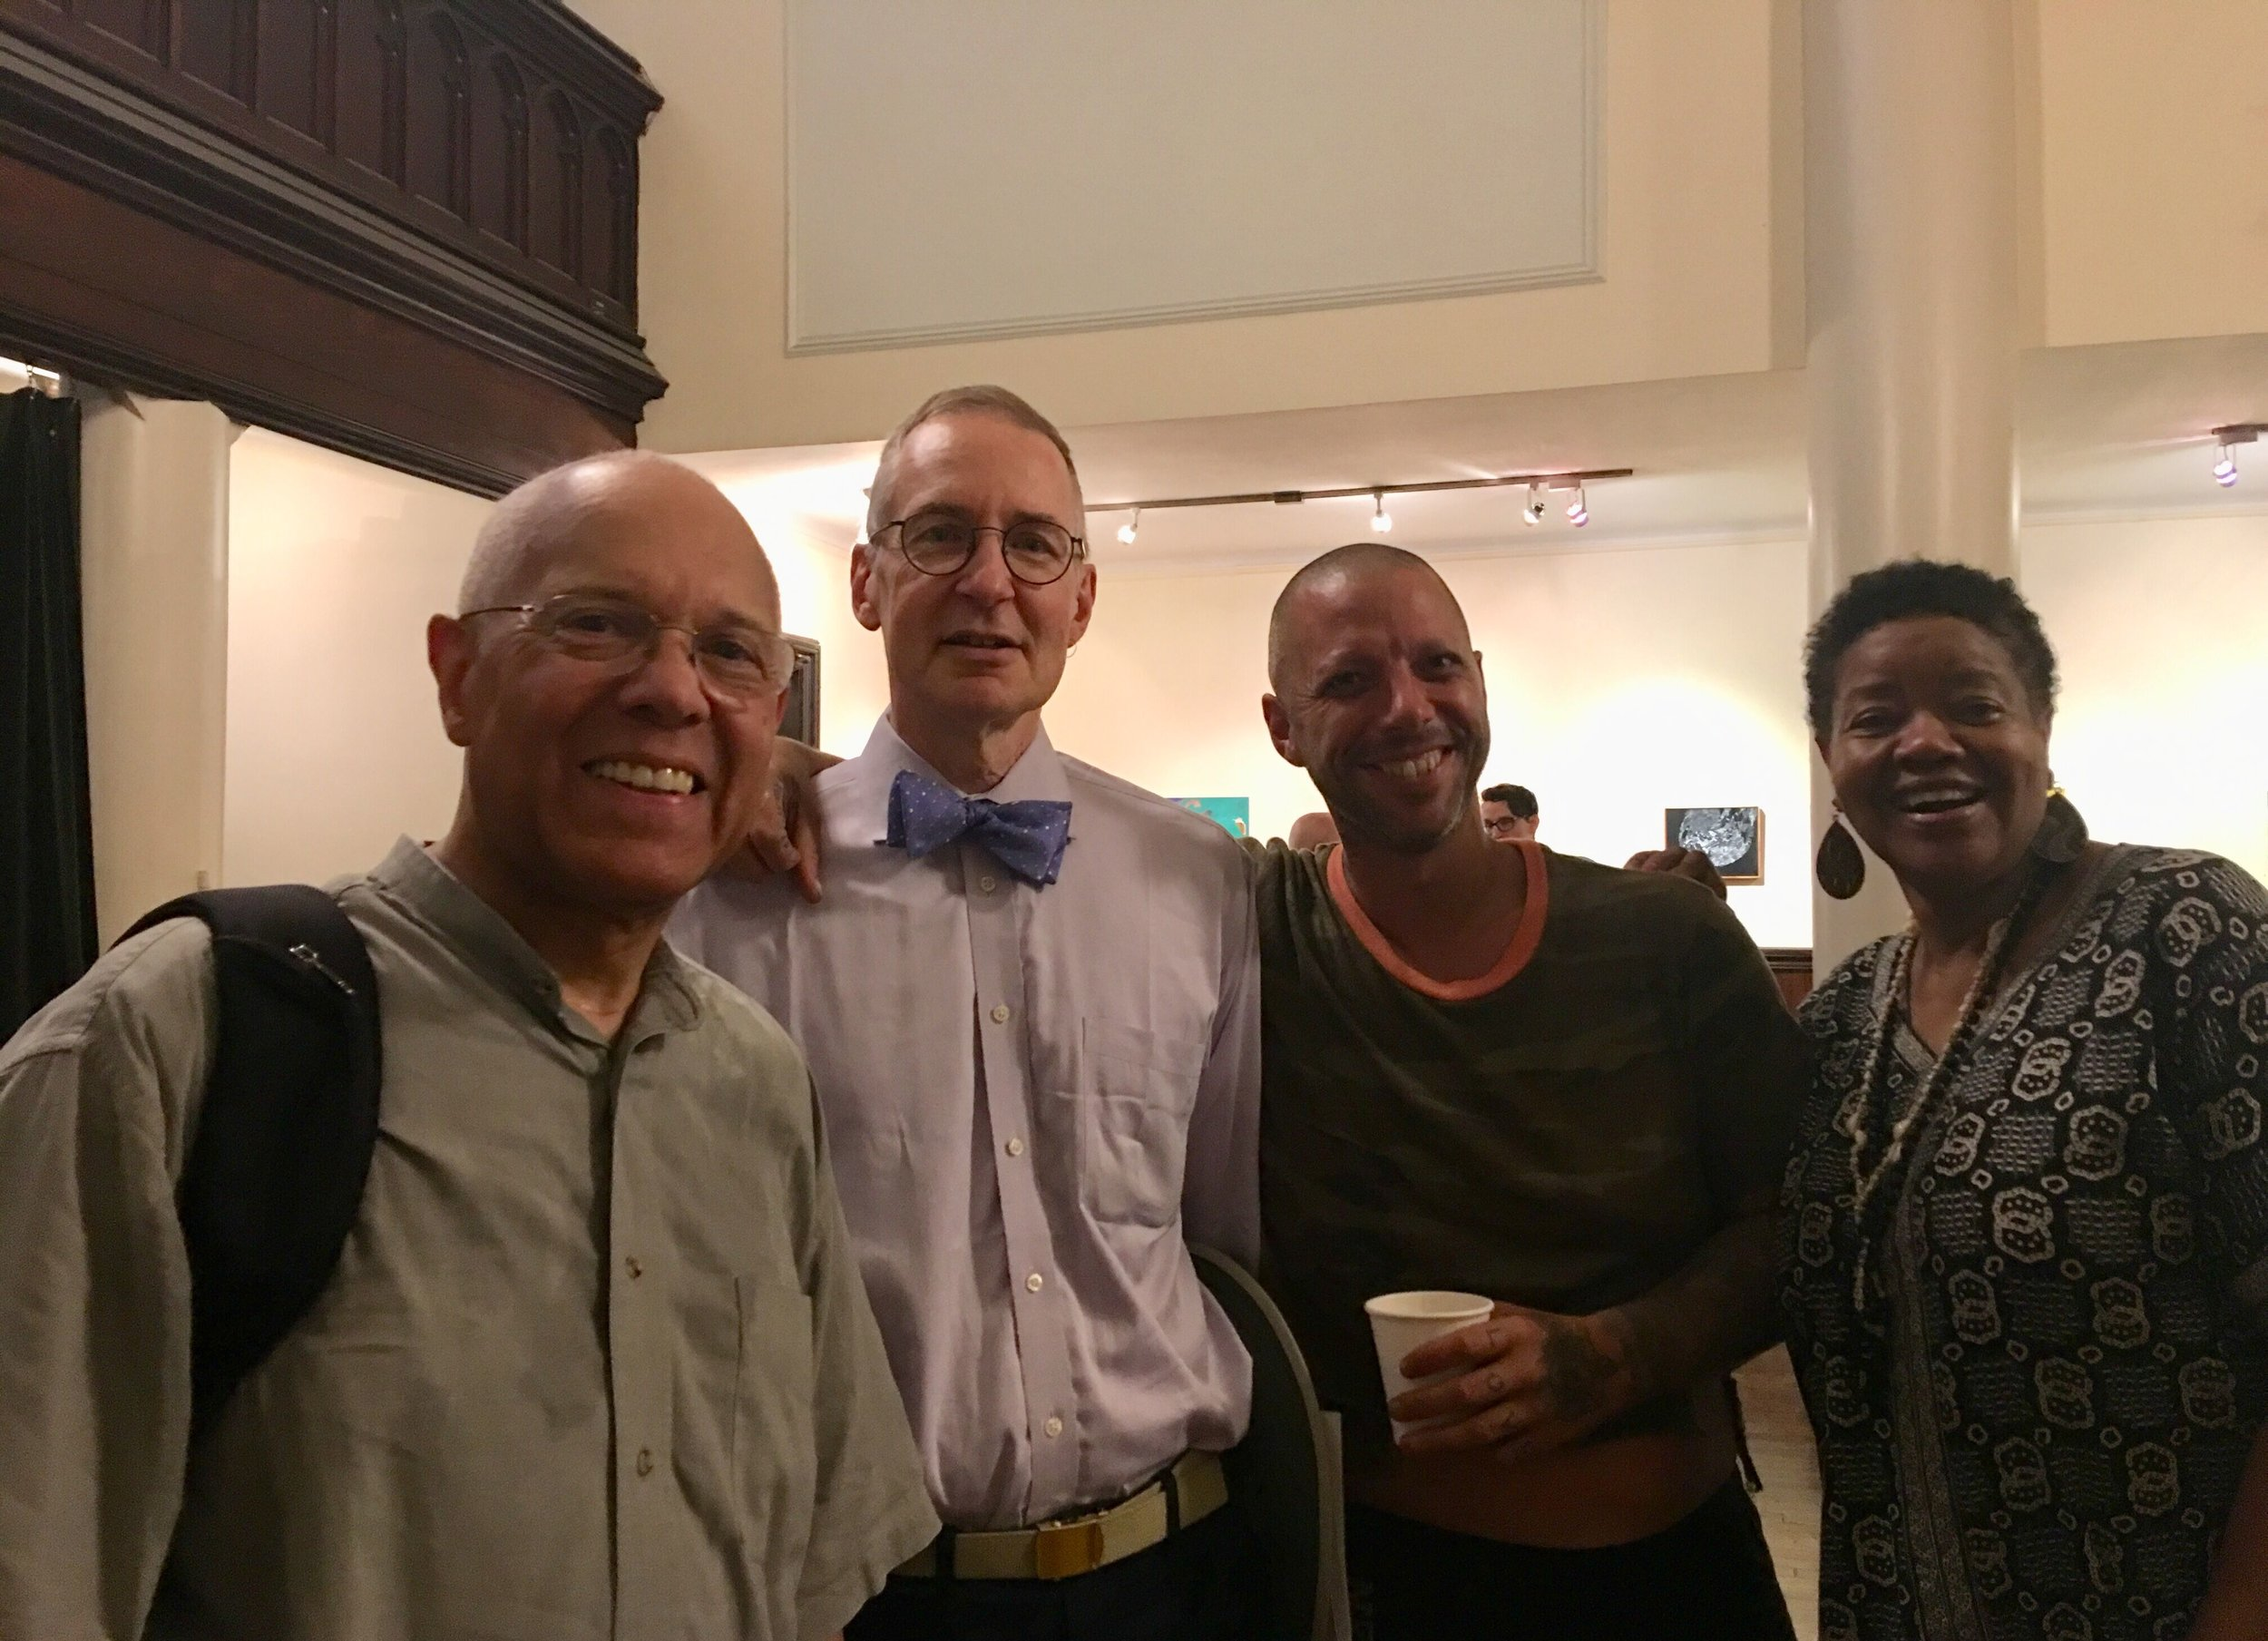 At Coffee Hour on Sunday: (l. to r.) David Hurd, Gregory Eaton, Mozzy, and Cooki Winborn.  Photo:  Renée Pecquex